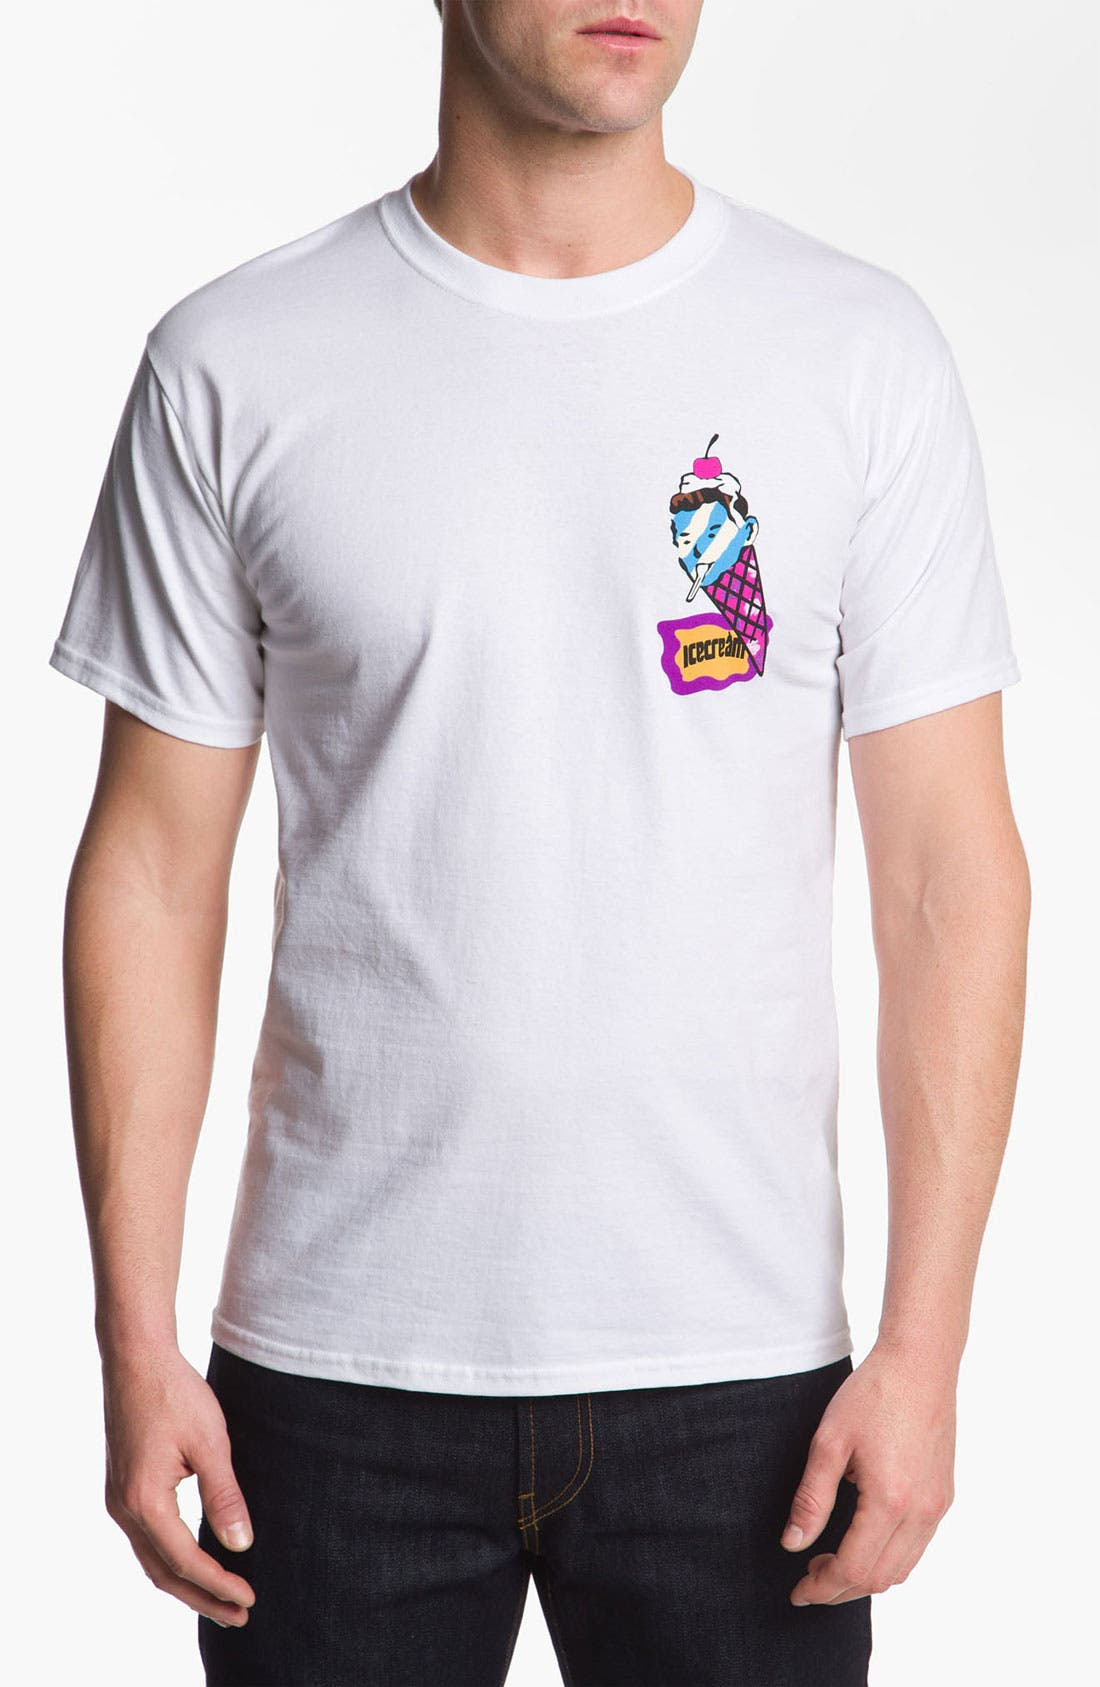 Alternate Image 1 Selected - Ice Cream 'Sundae' Short Sleeve T-Shirt